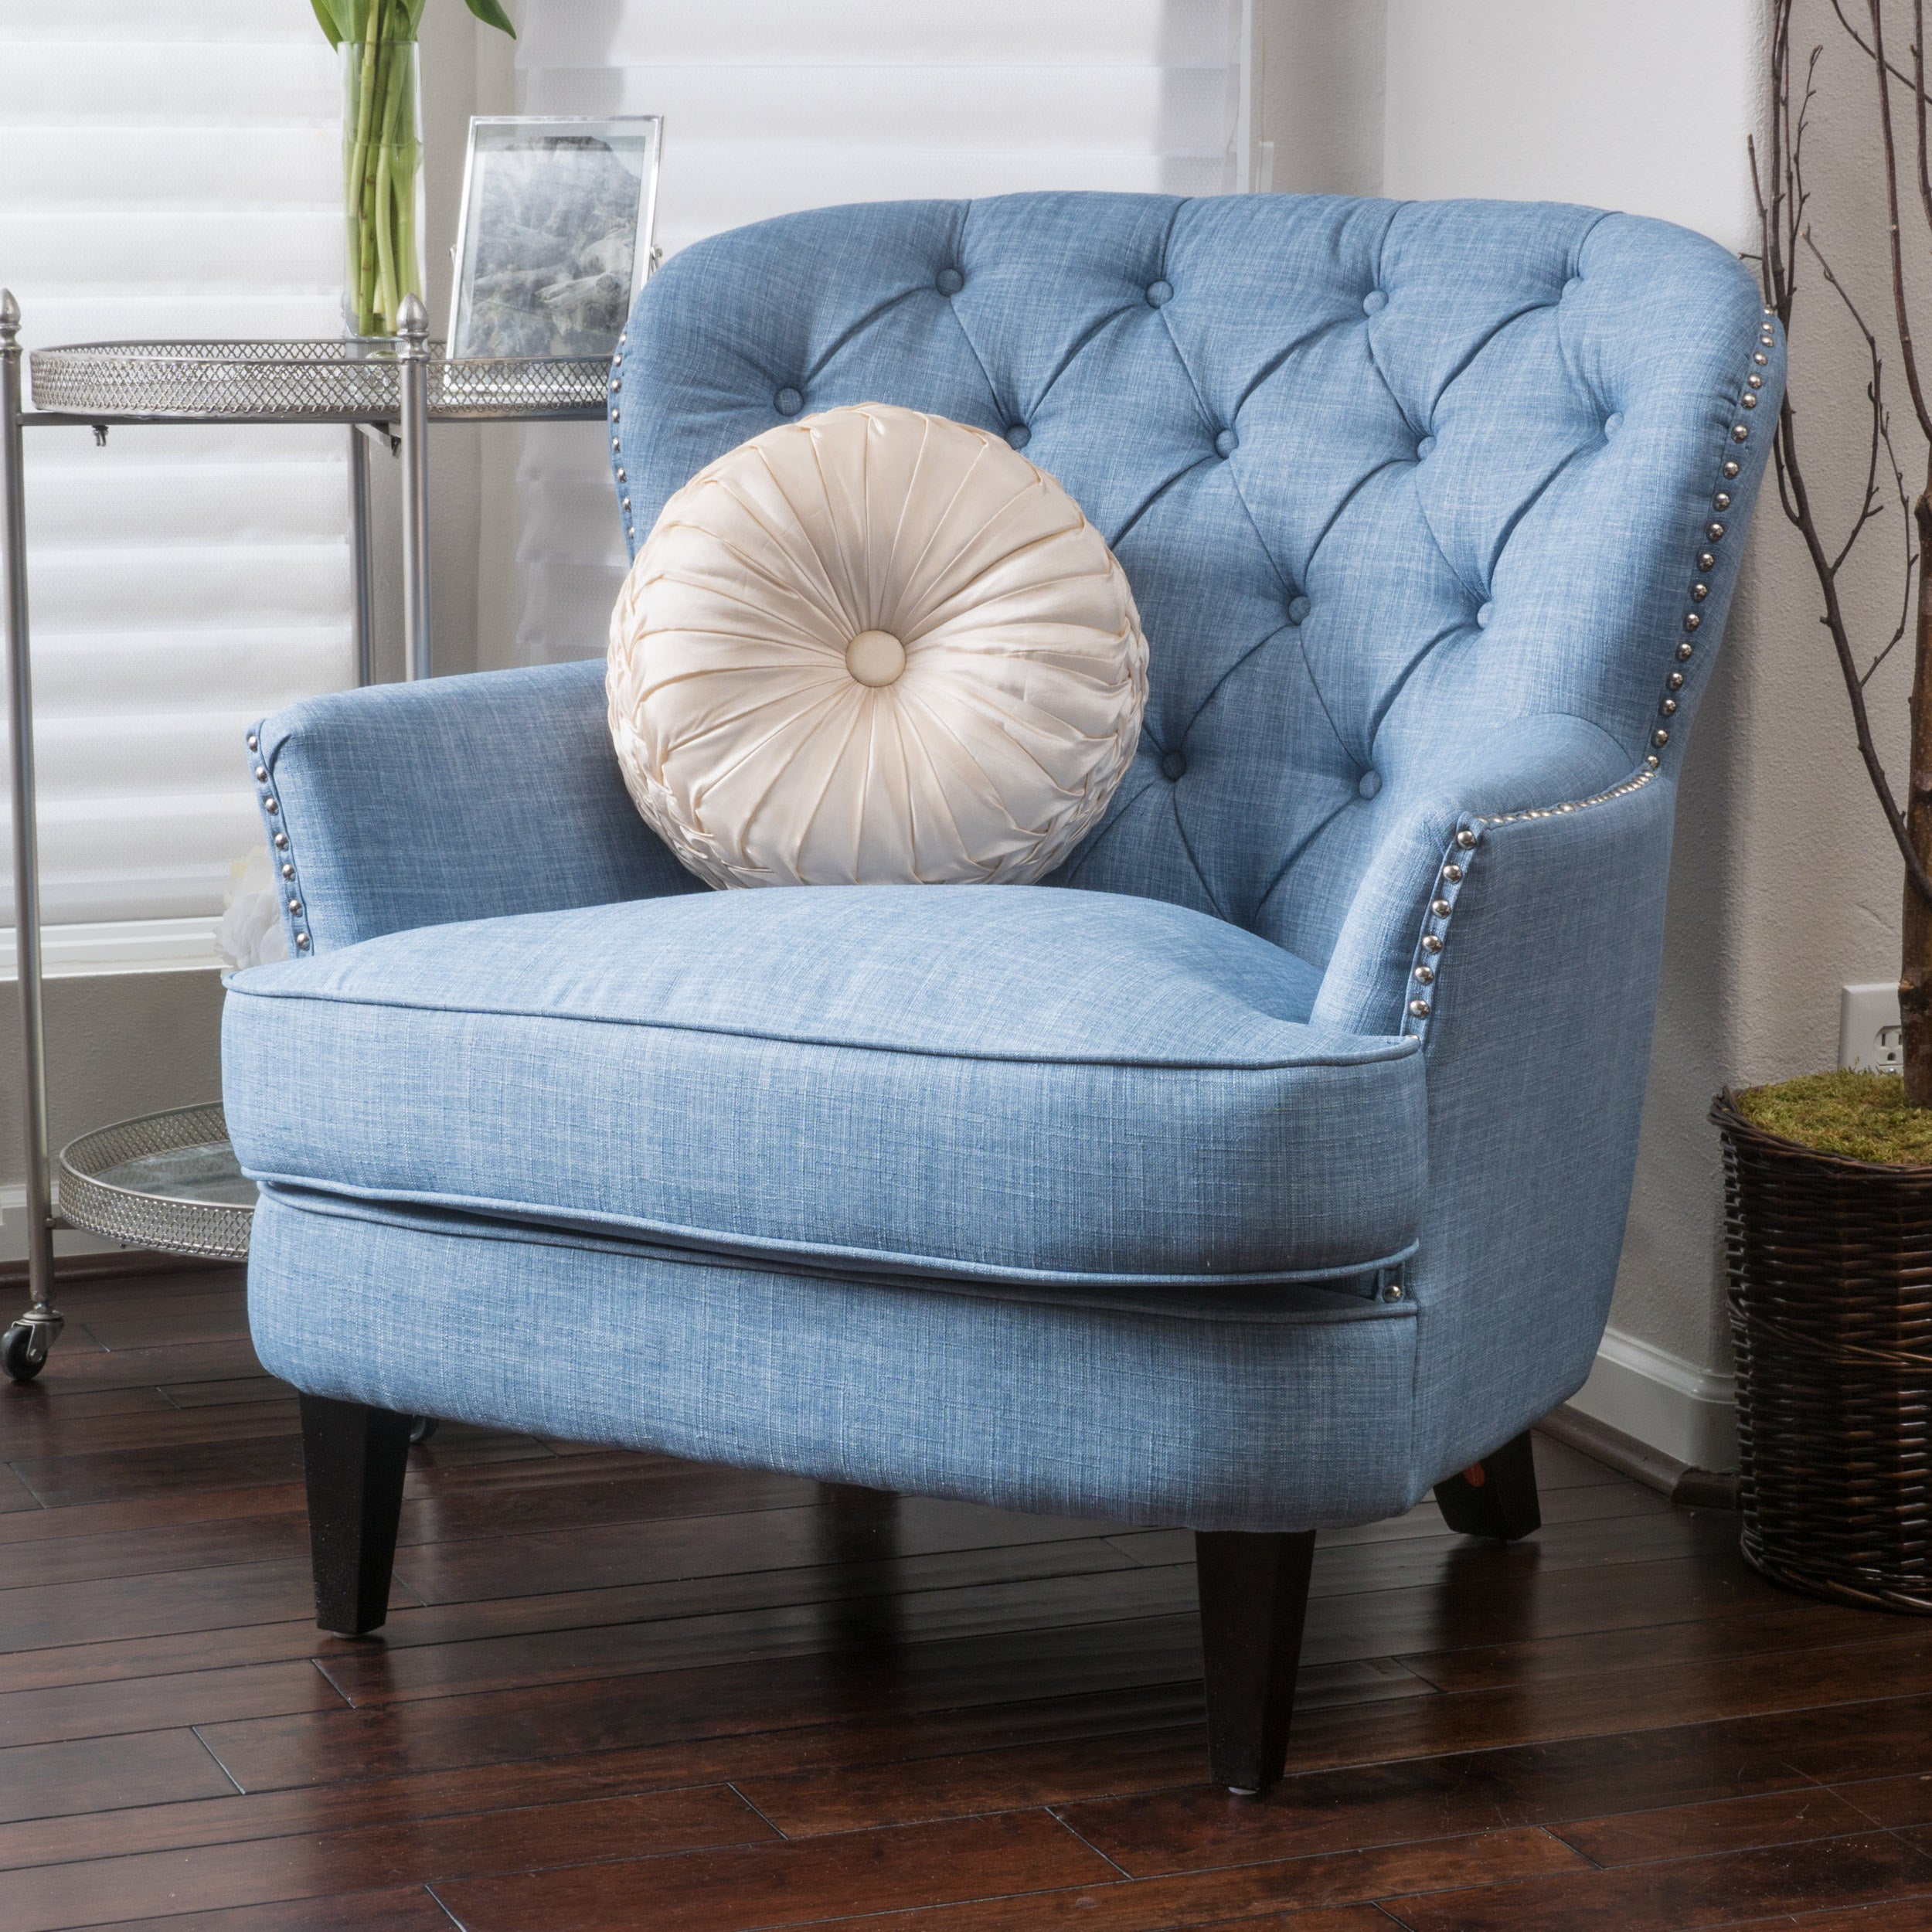 Details About Accent Chairs For Living Room Furniture Club Chair Tufted Oversized Fabric G